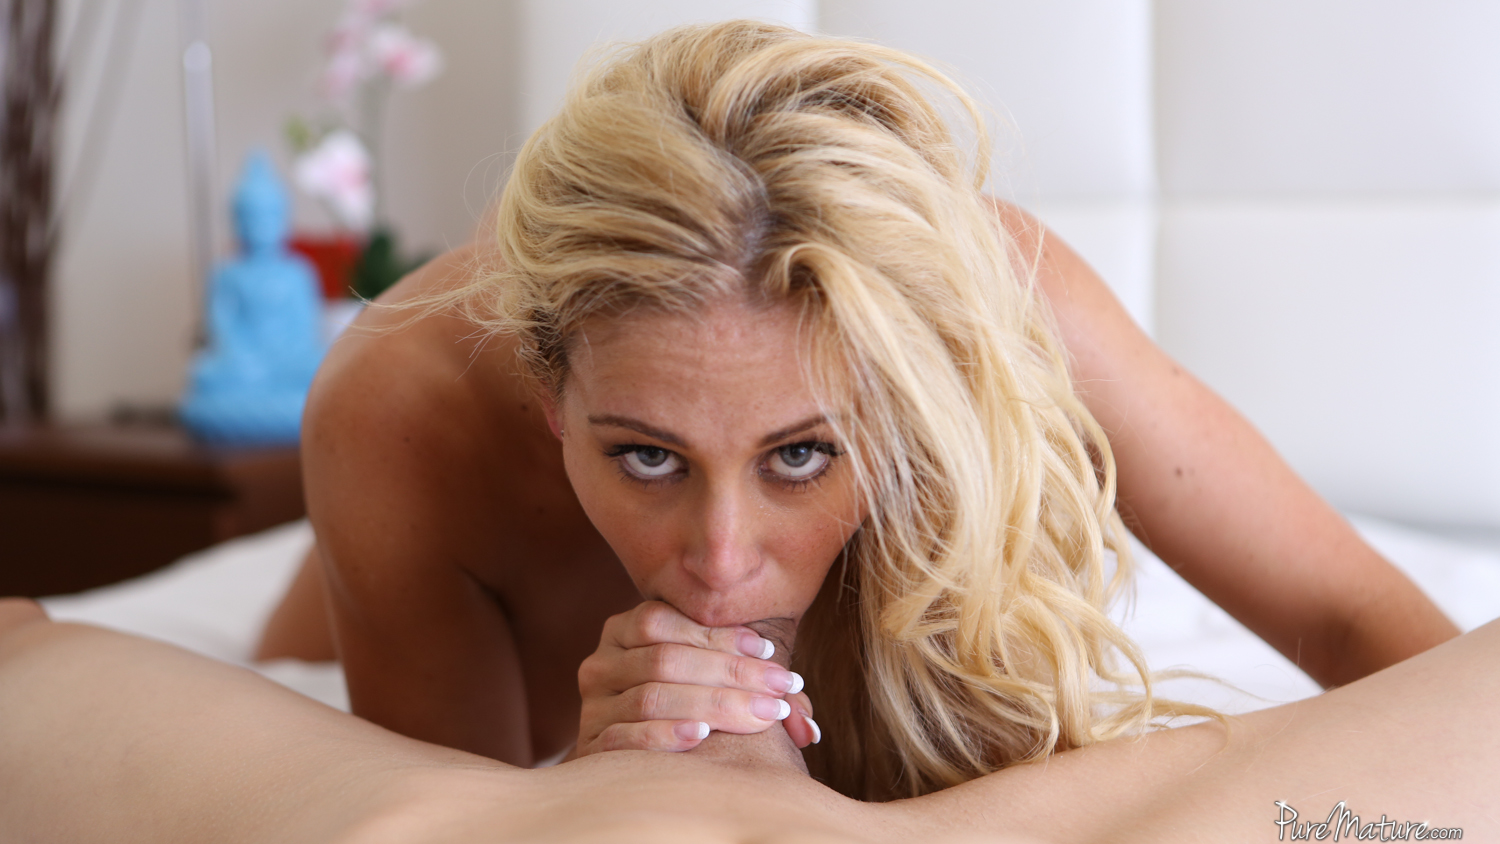 Puremature blonde milf cherie deville lube up anal fuck pool 1